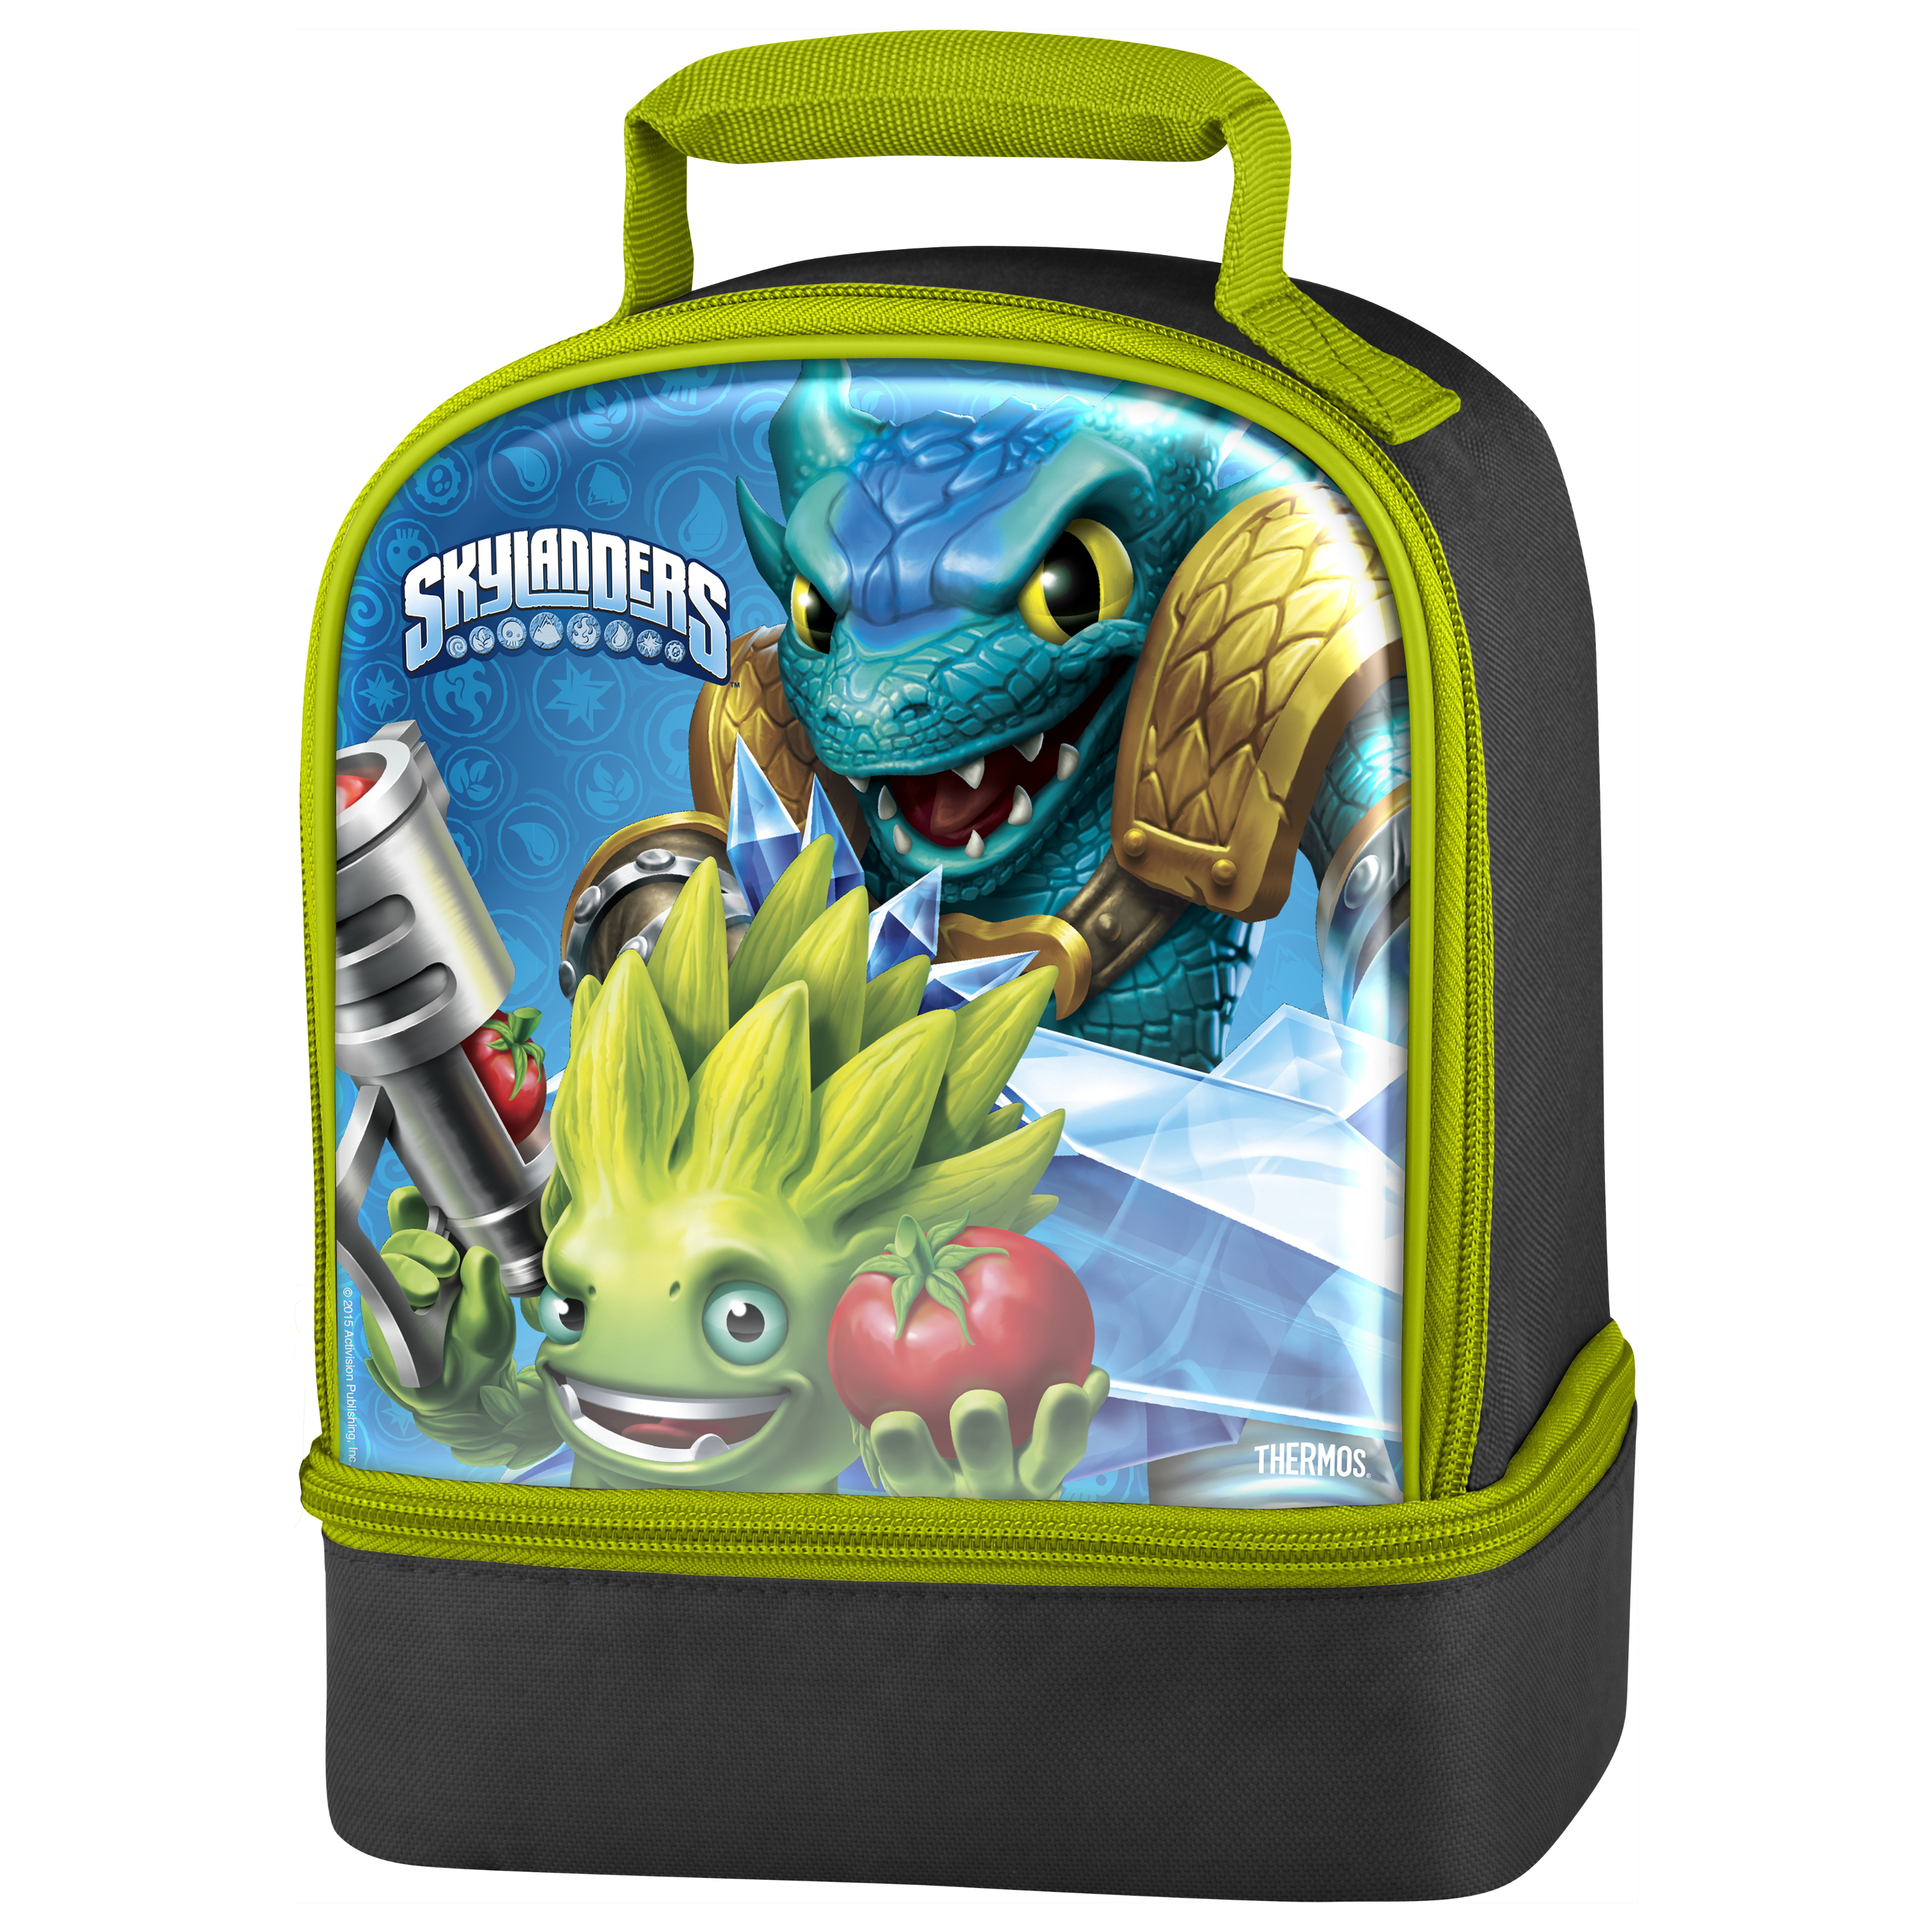 Thermos Skylanders Video Game 7.5 x 9.5 Inch Insulated Dual Lunch Kit